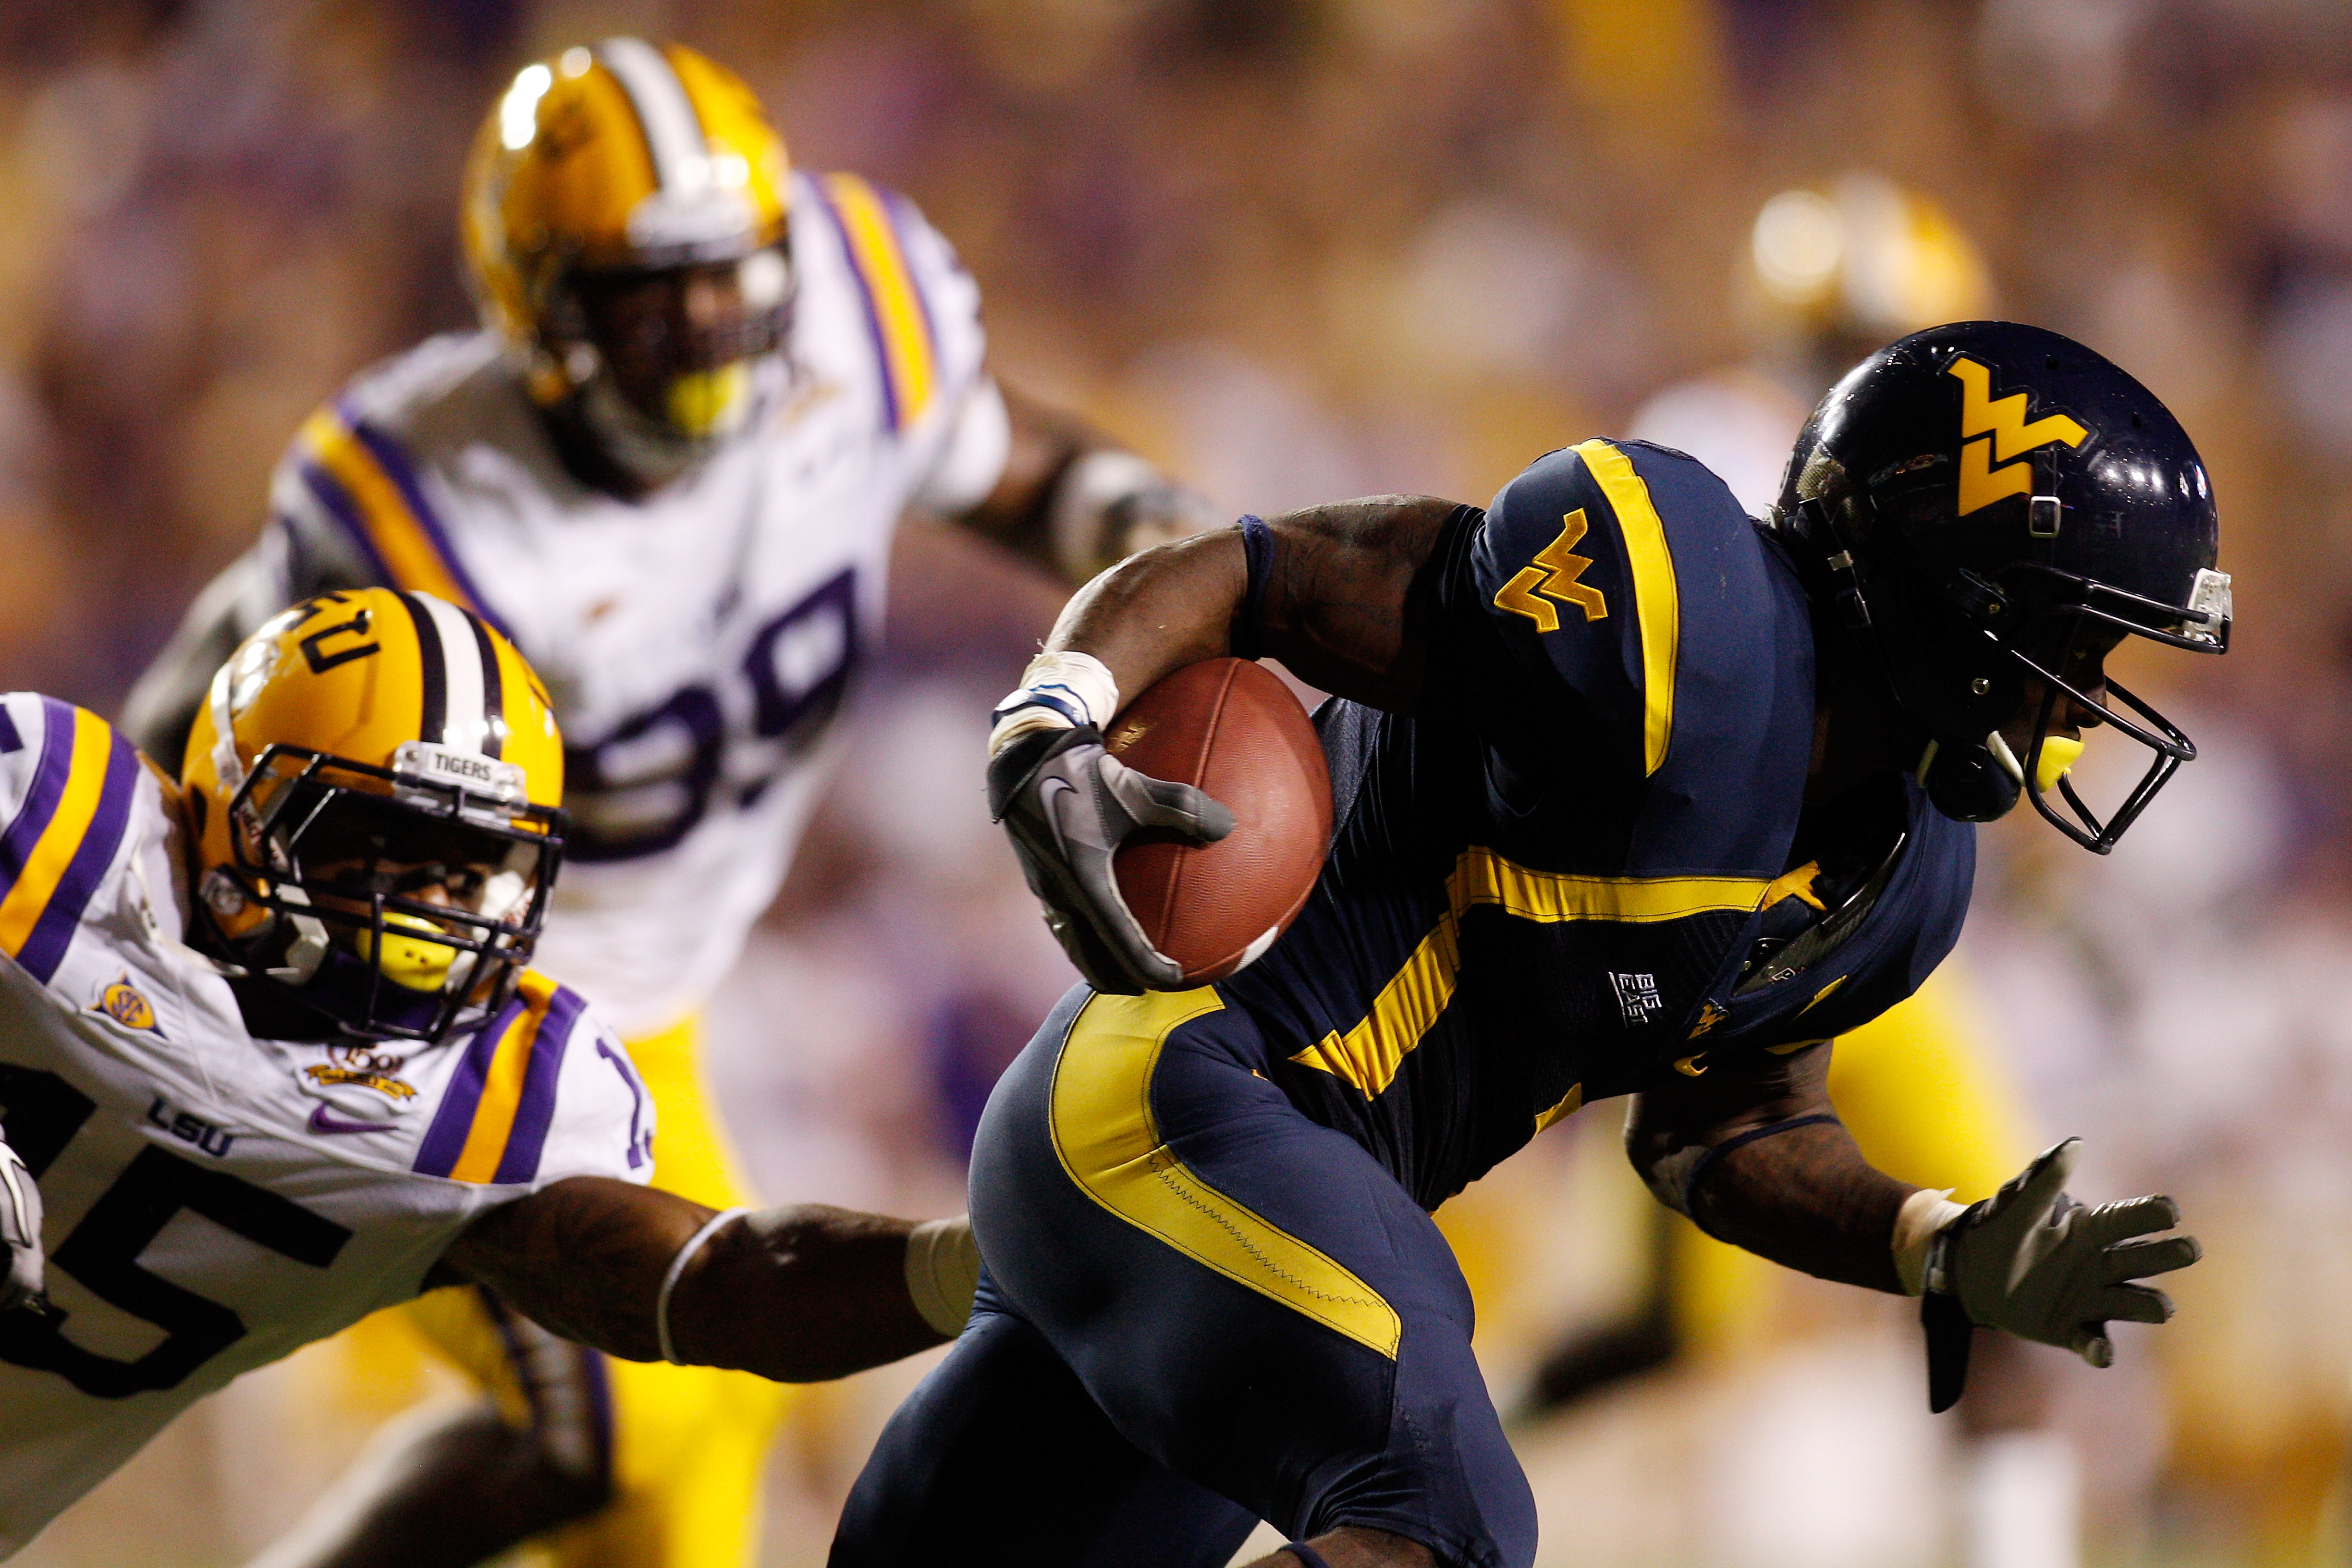 BATON ROUGE, LA - SEPTEMBER 25:  Noel Devine #7 of the West Virginia Mountaineers avoids a tackle by Brandon Taylor #15 of the Louisiana State Univeristy Tigers at Tiger Stadium on September 25, 2010 in Baton Rouge, Louisiana.  The Tigers defeated the Mou